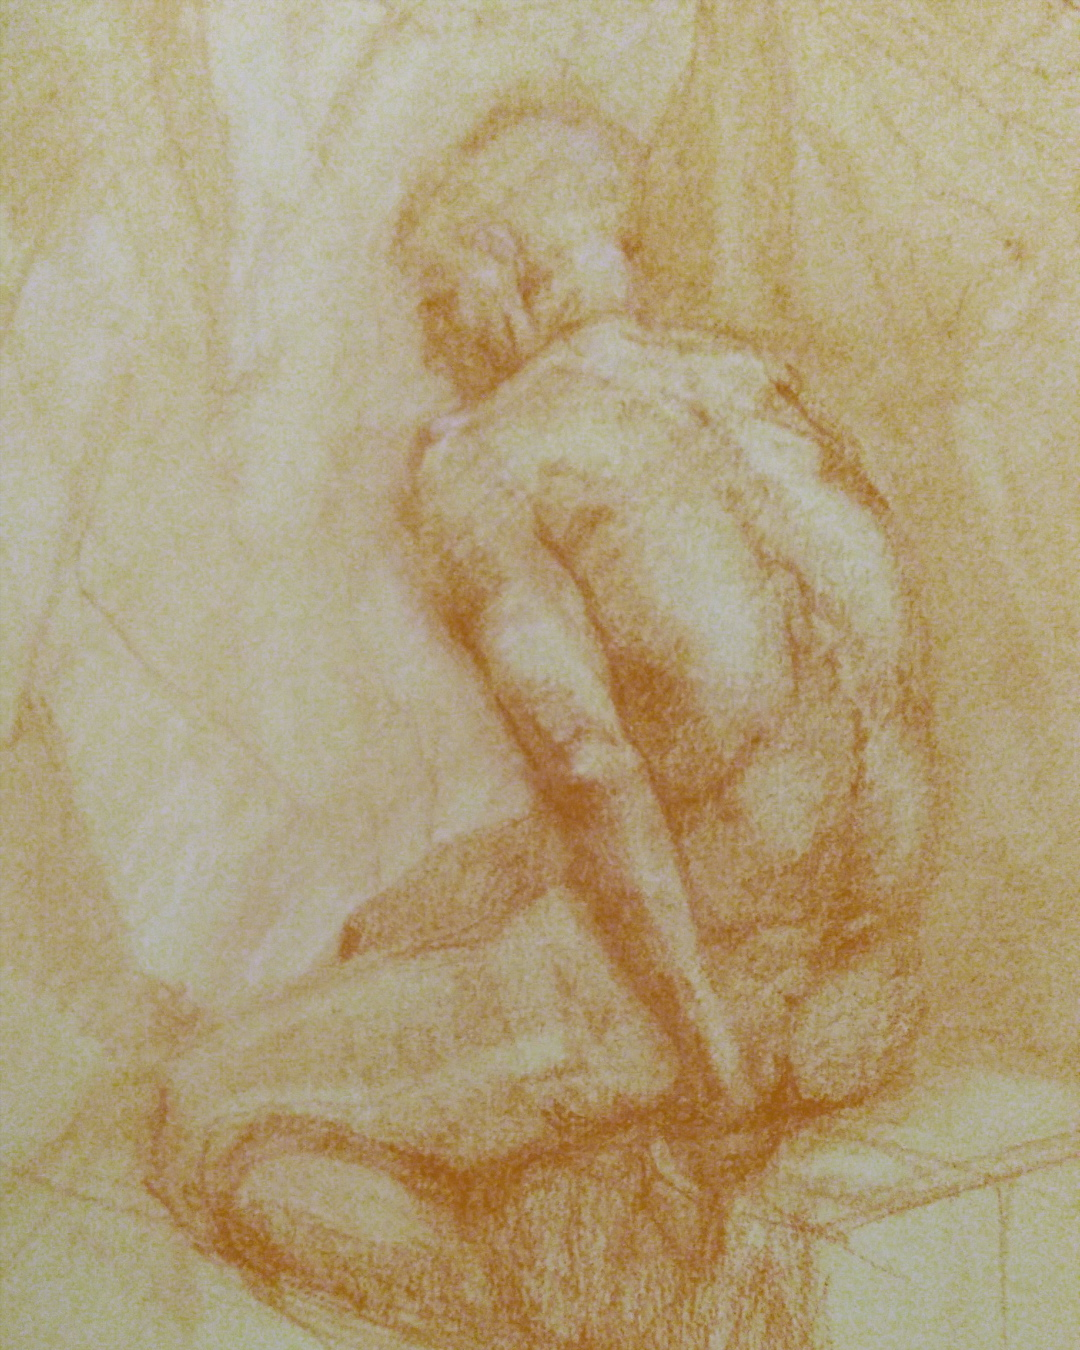 Red Chalk on Paper 6 x 8 inches